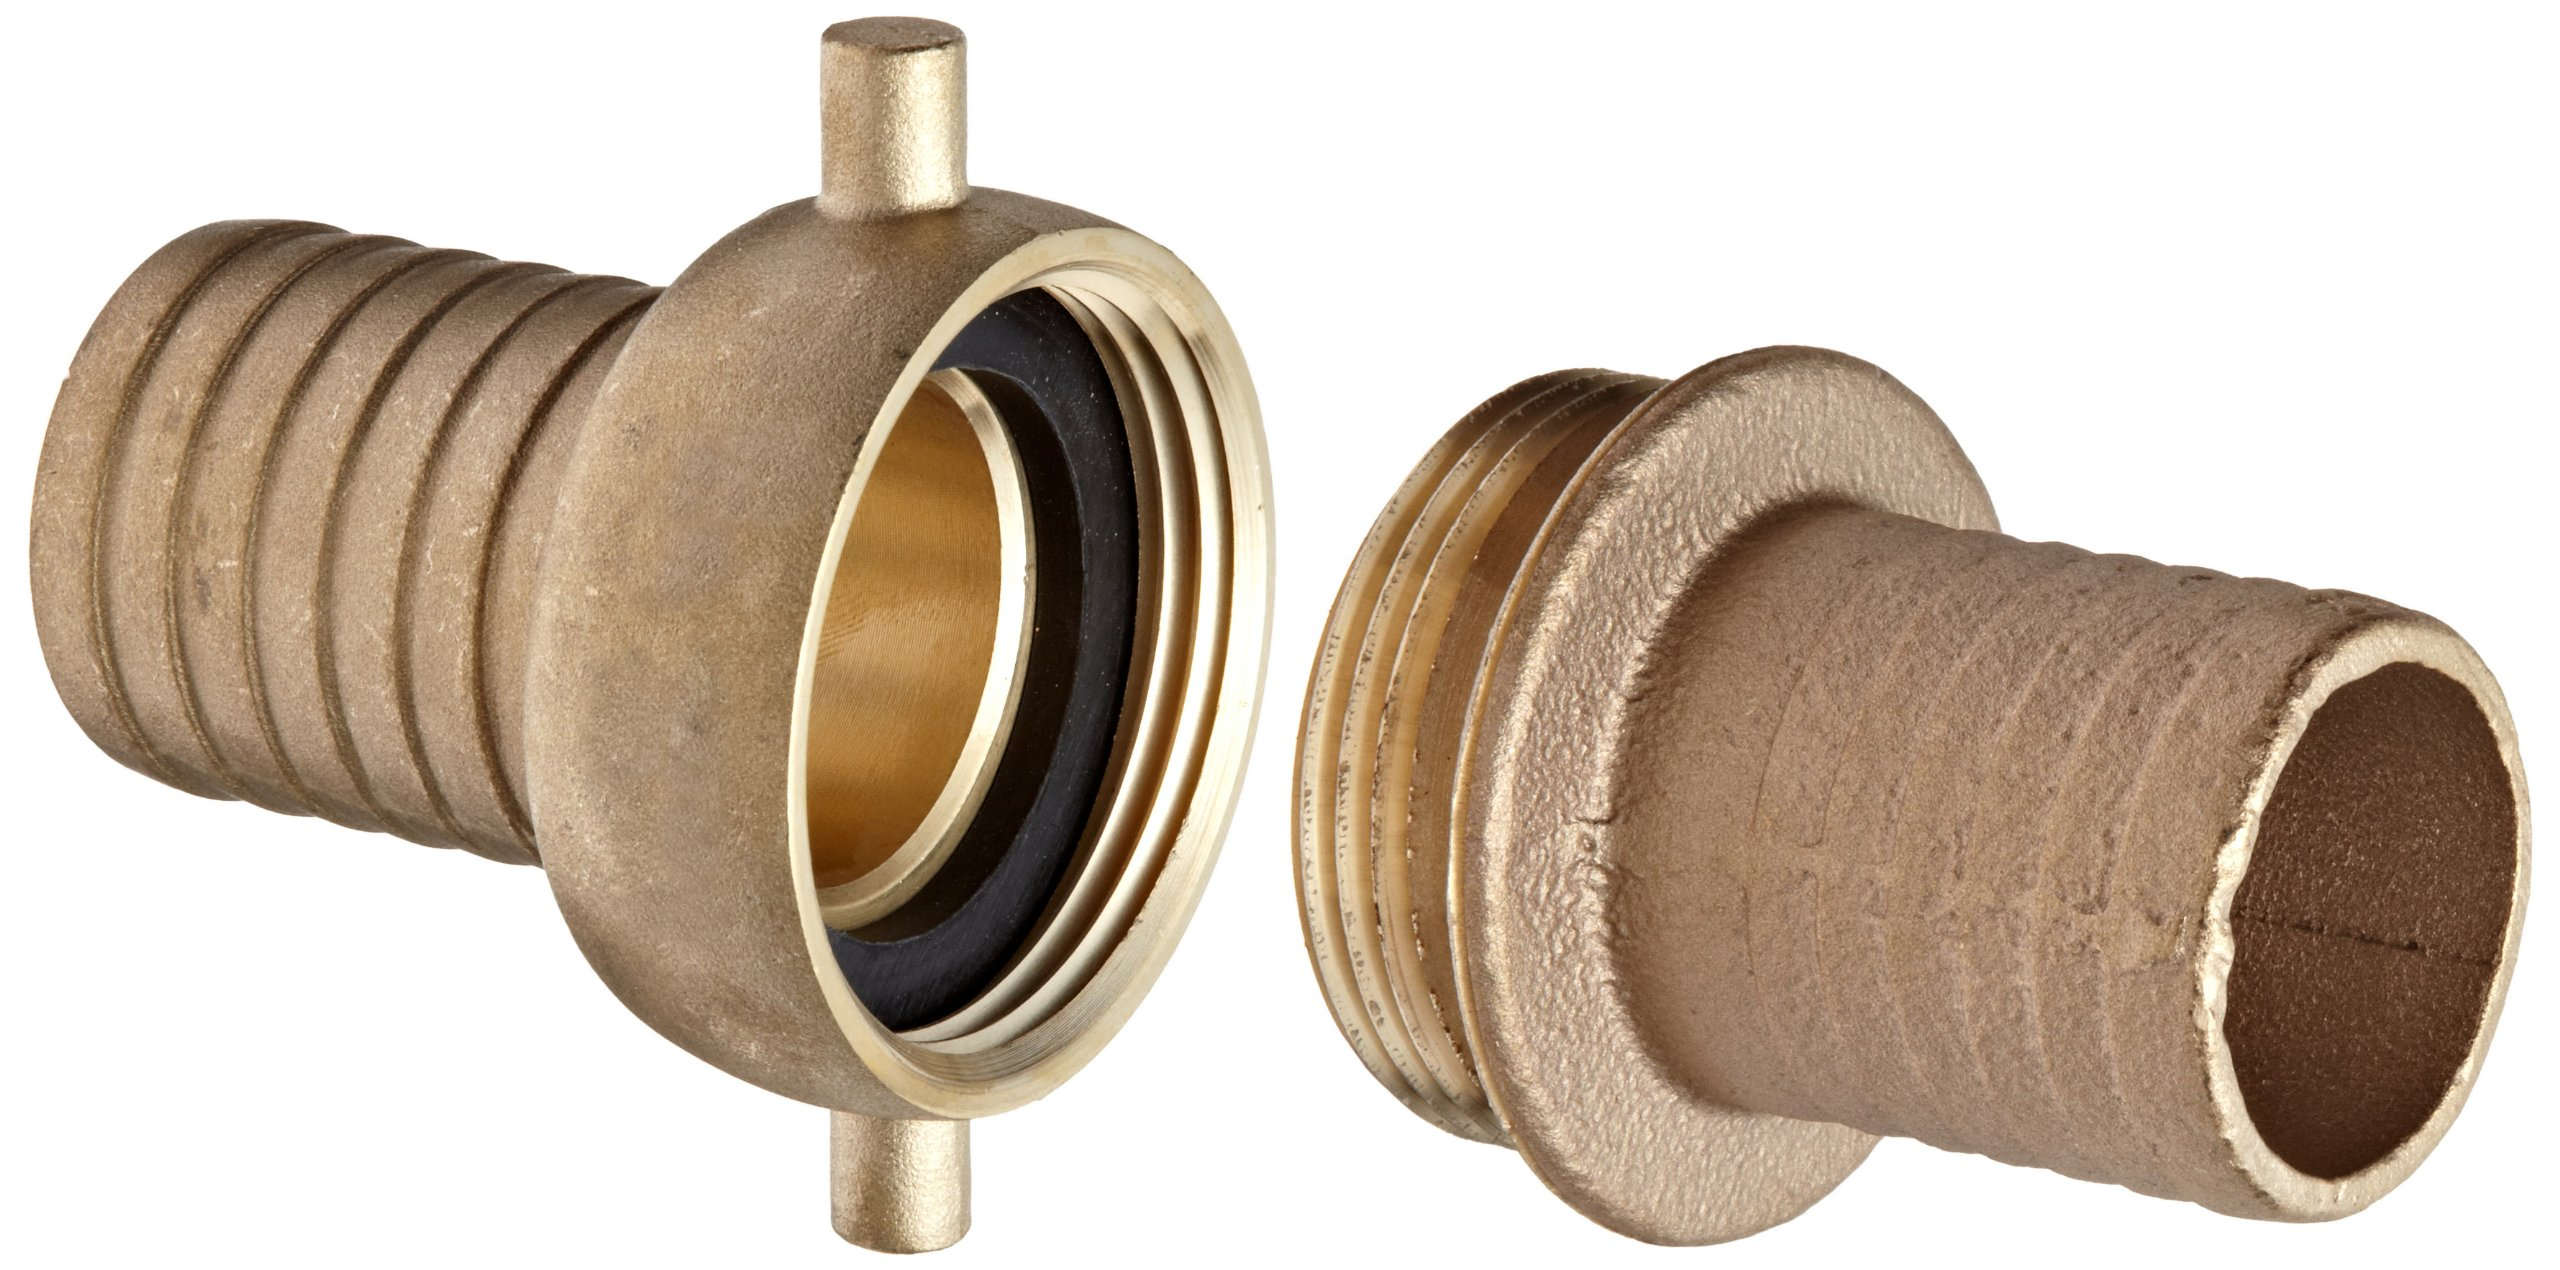 Dixon BS63N Brass Hose Fitting, Complete King Short Suction Coupling Set with Brass Nut, 1-1/2'' NST x 1-1/2'' Hose ID Barbed